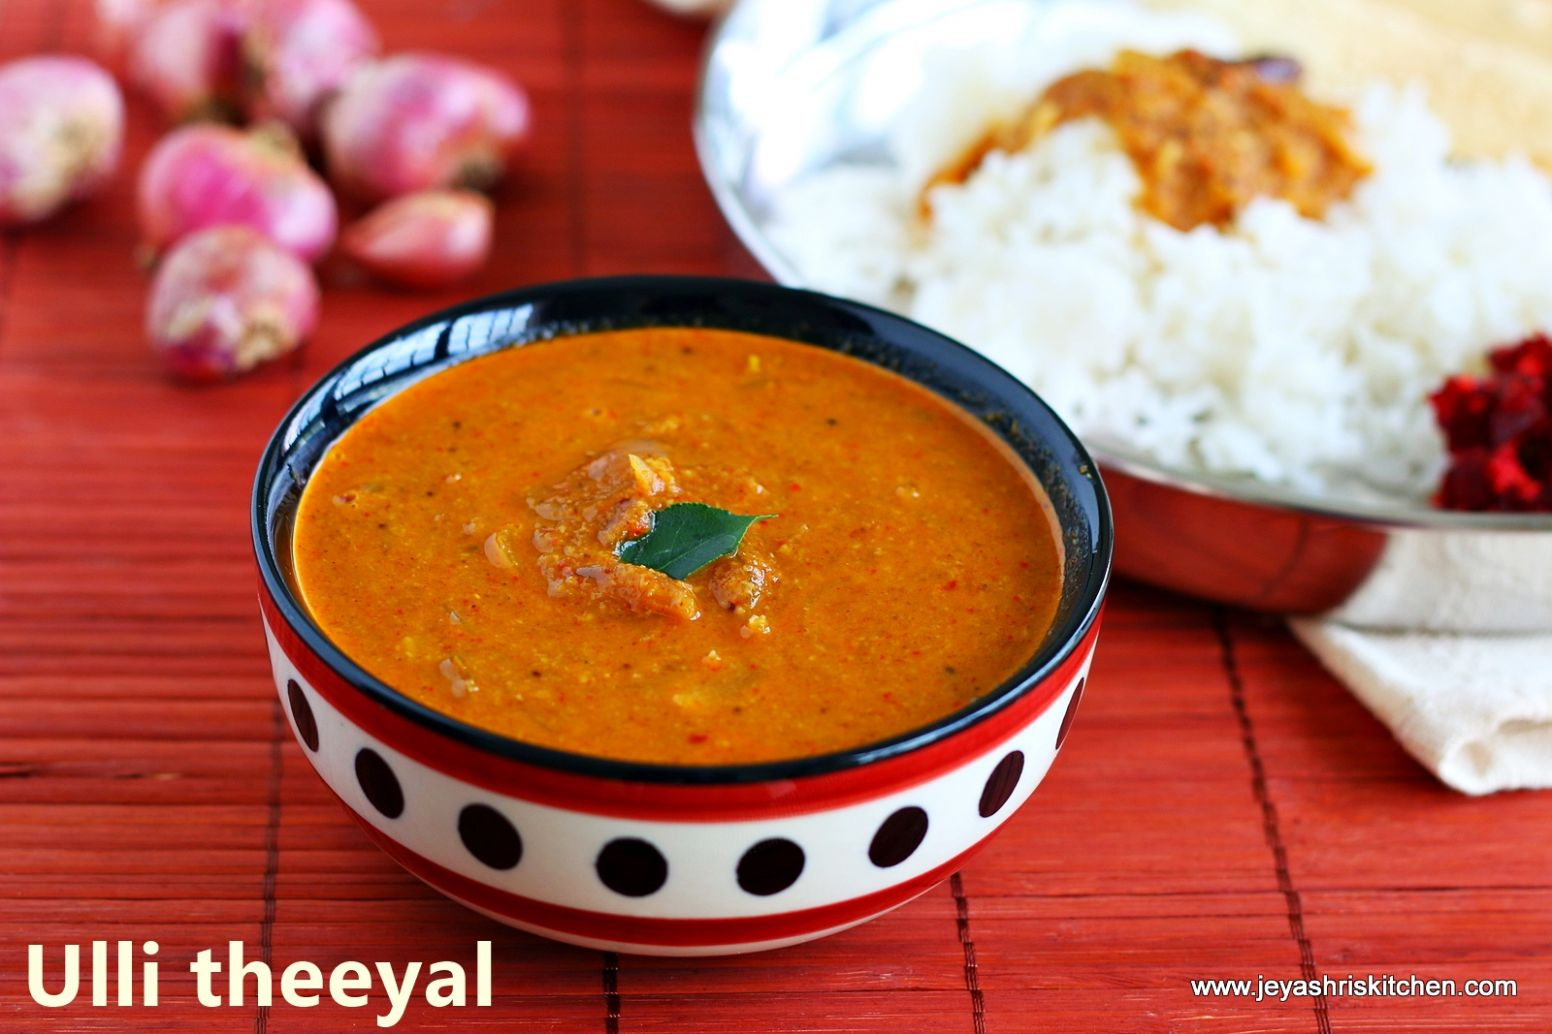 Ulli Theeyal recipe | Kerala Ulli theeyal by Jeyashri's Kitchen